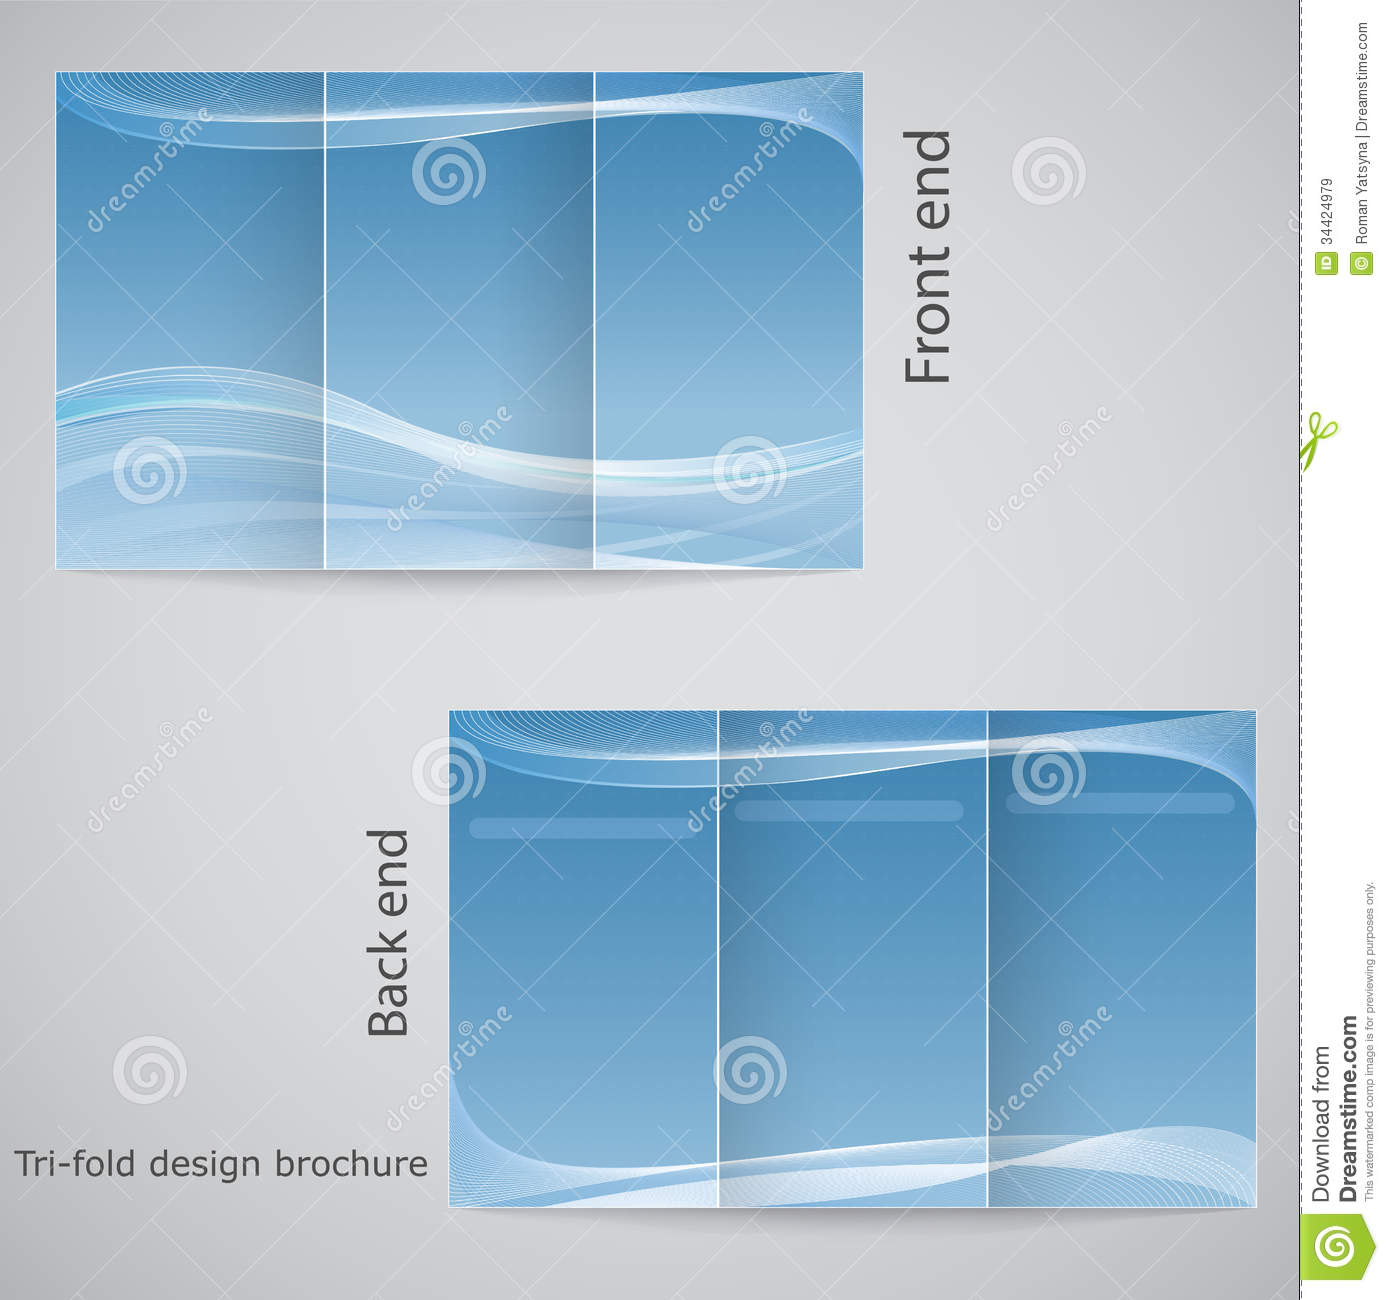 Trifold Brochure Design Stock Vector Illustration Of Handbill - Tri fold brochure templates free download